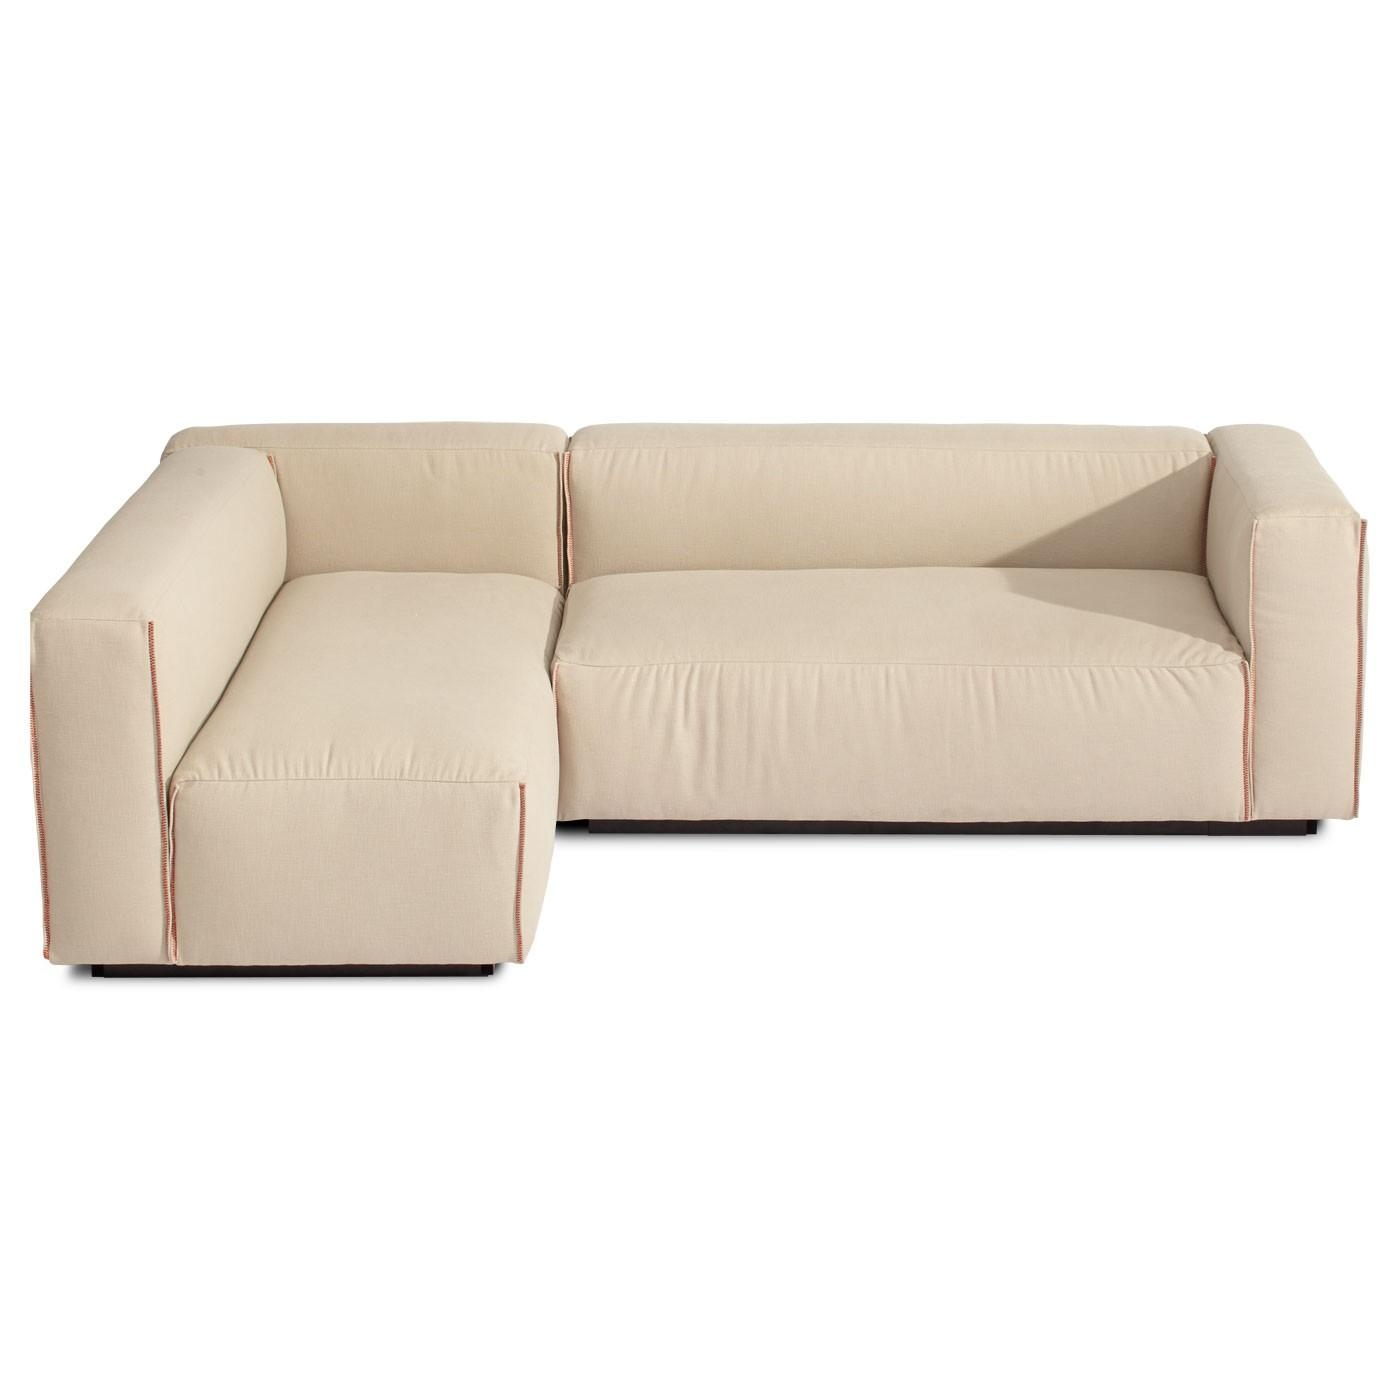 Sectional Sofa For Small Spaces (Image 8 of 20)